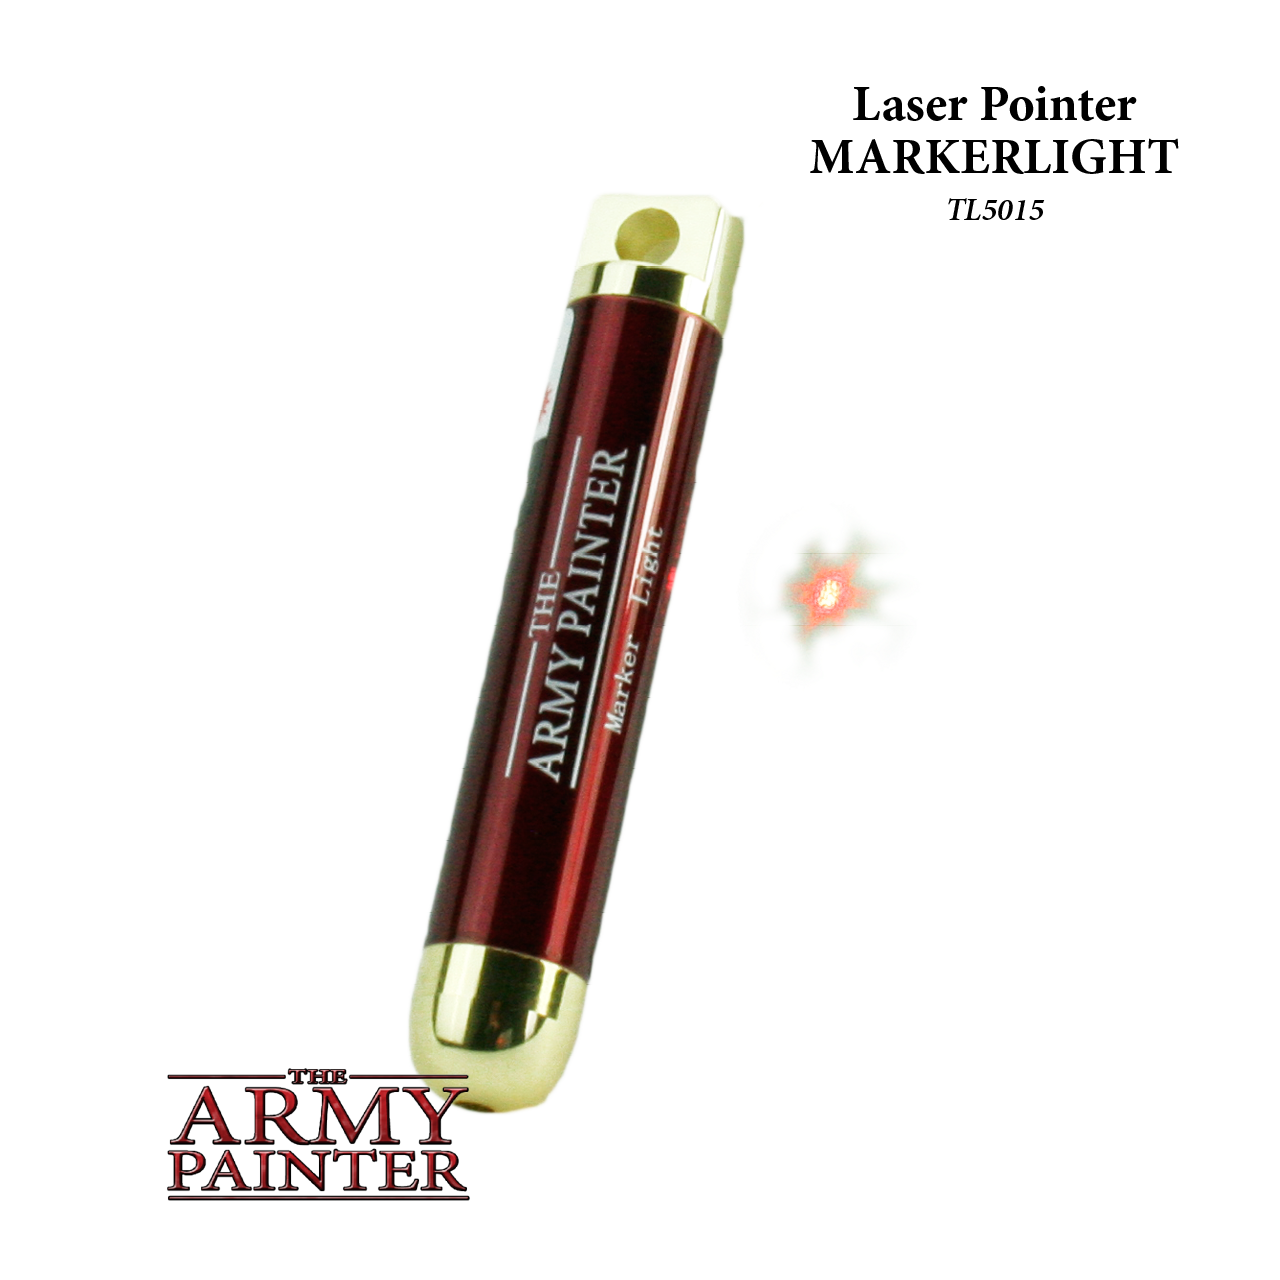 AP - Markerlight Laser Pointer